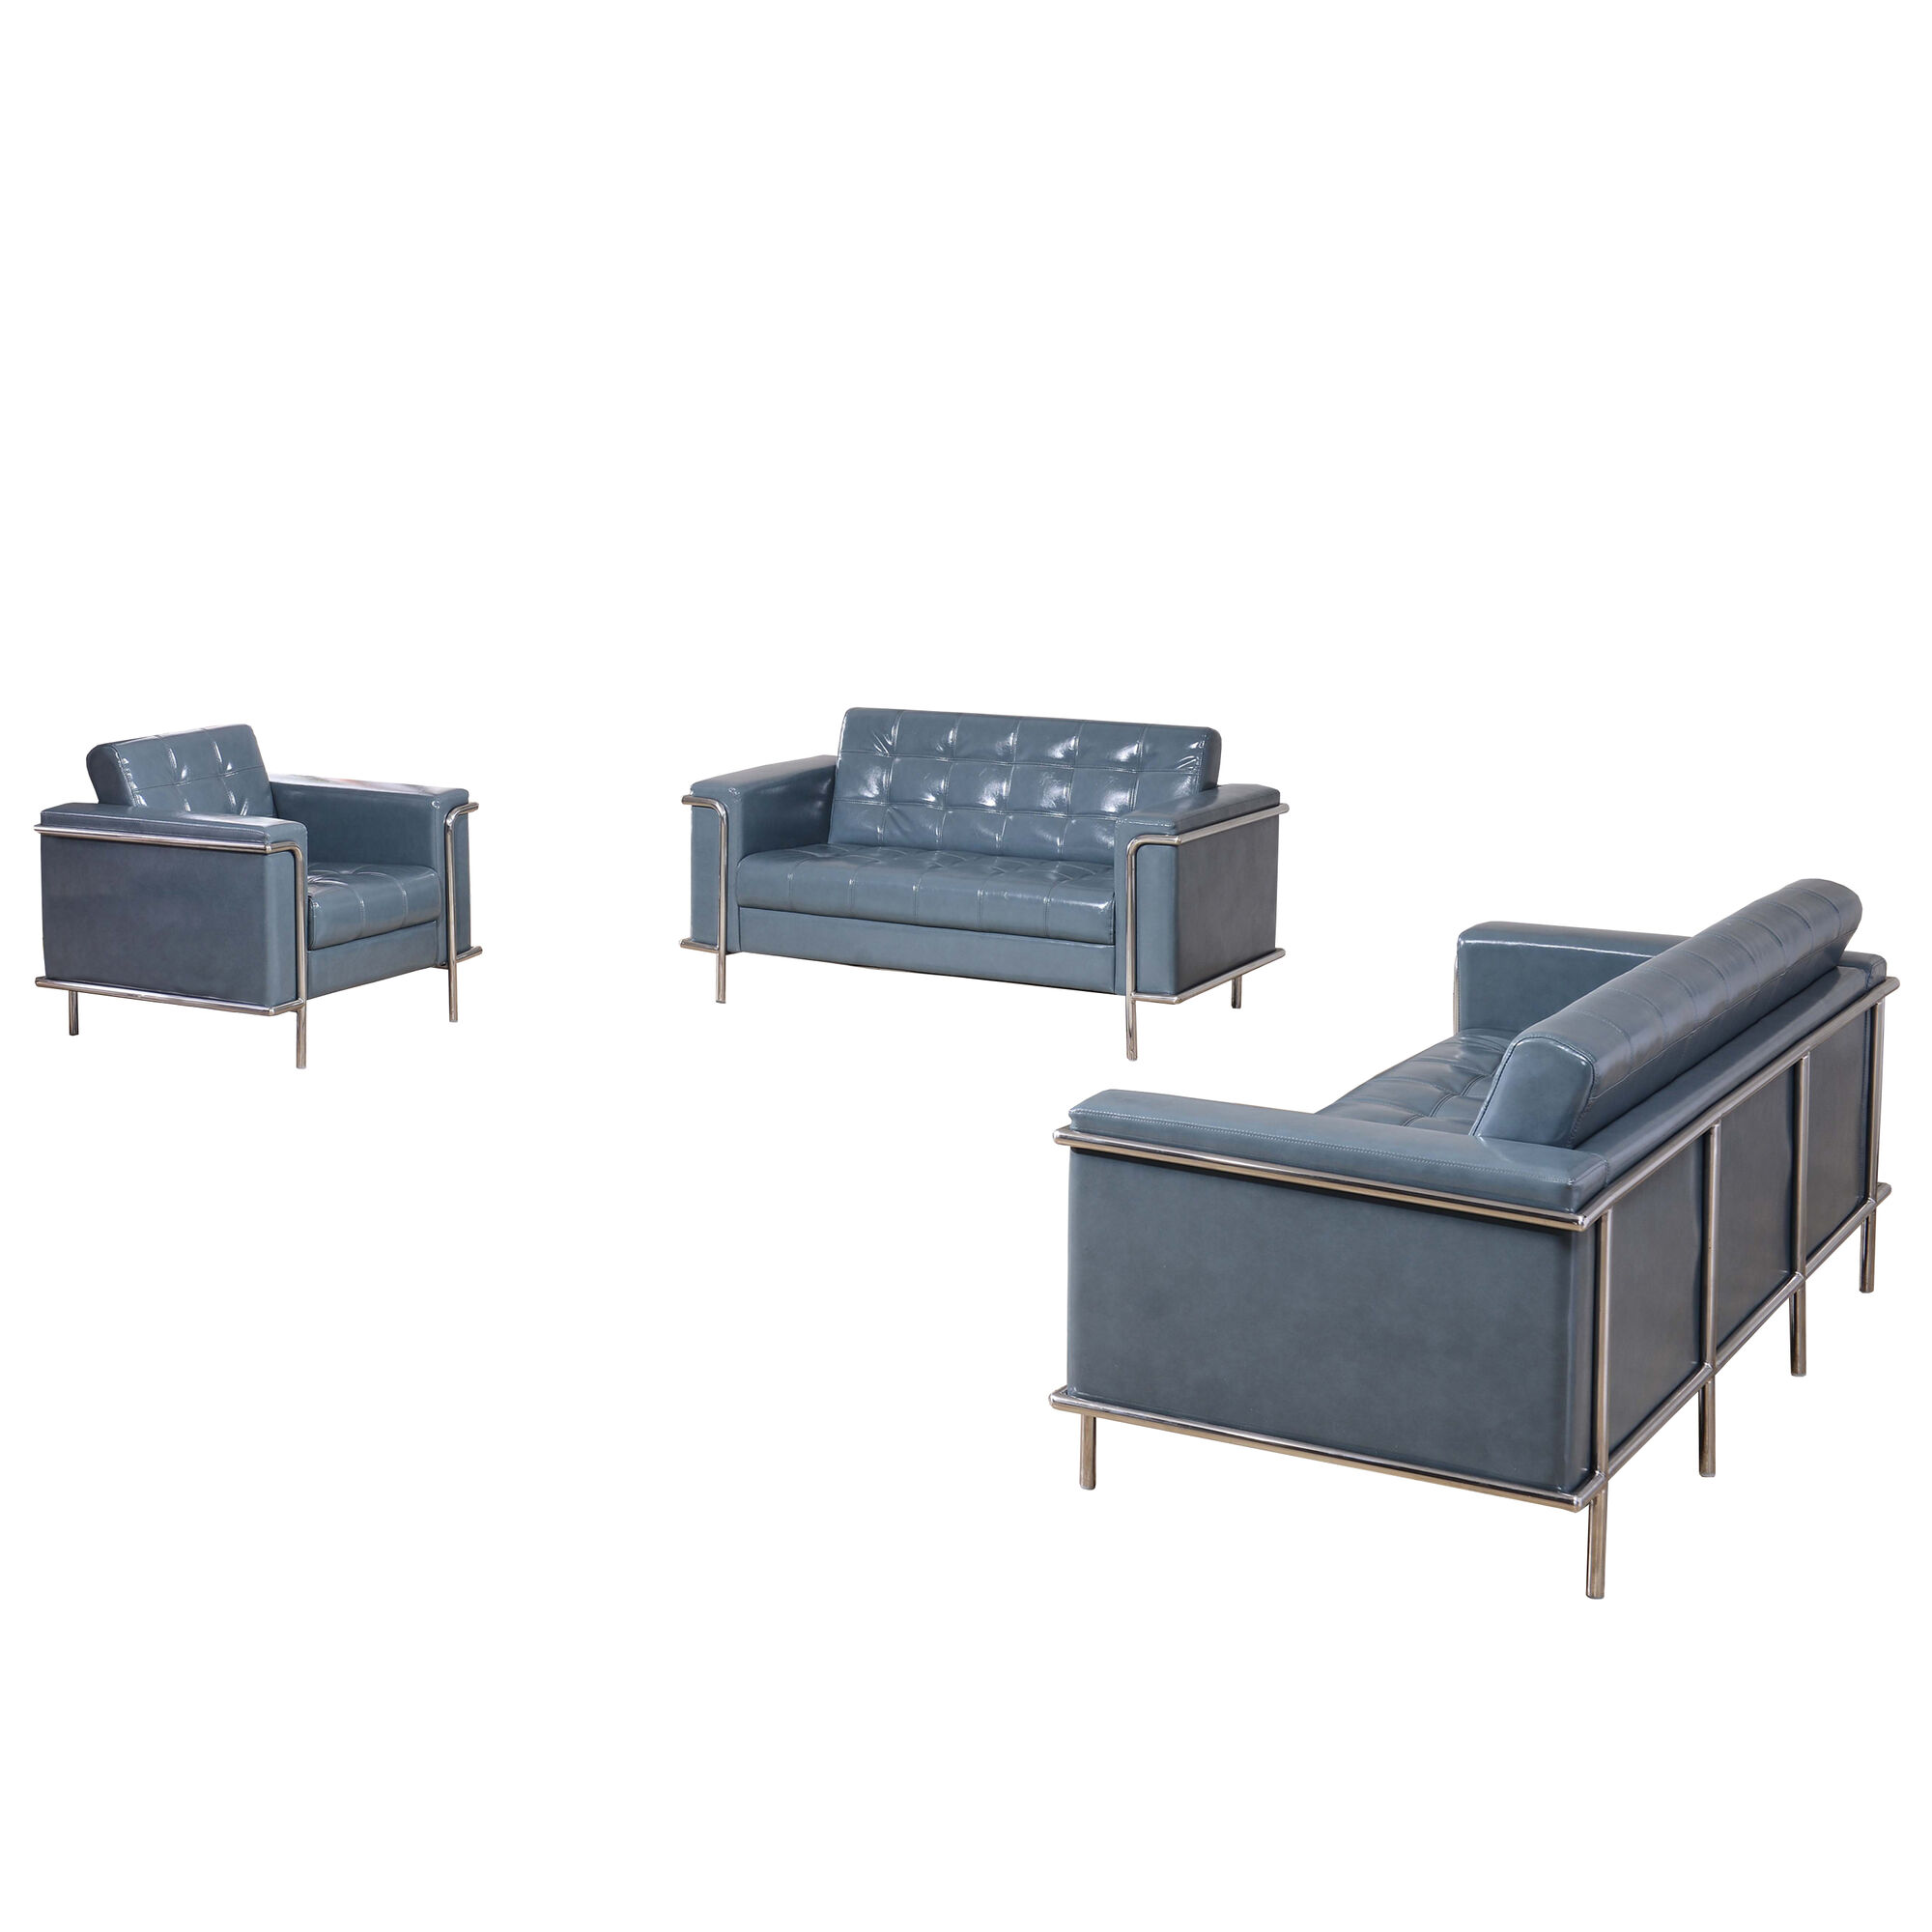 HERCULES Lesley Series Reception Set in Gray LeatherSoft with Free Tables